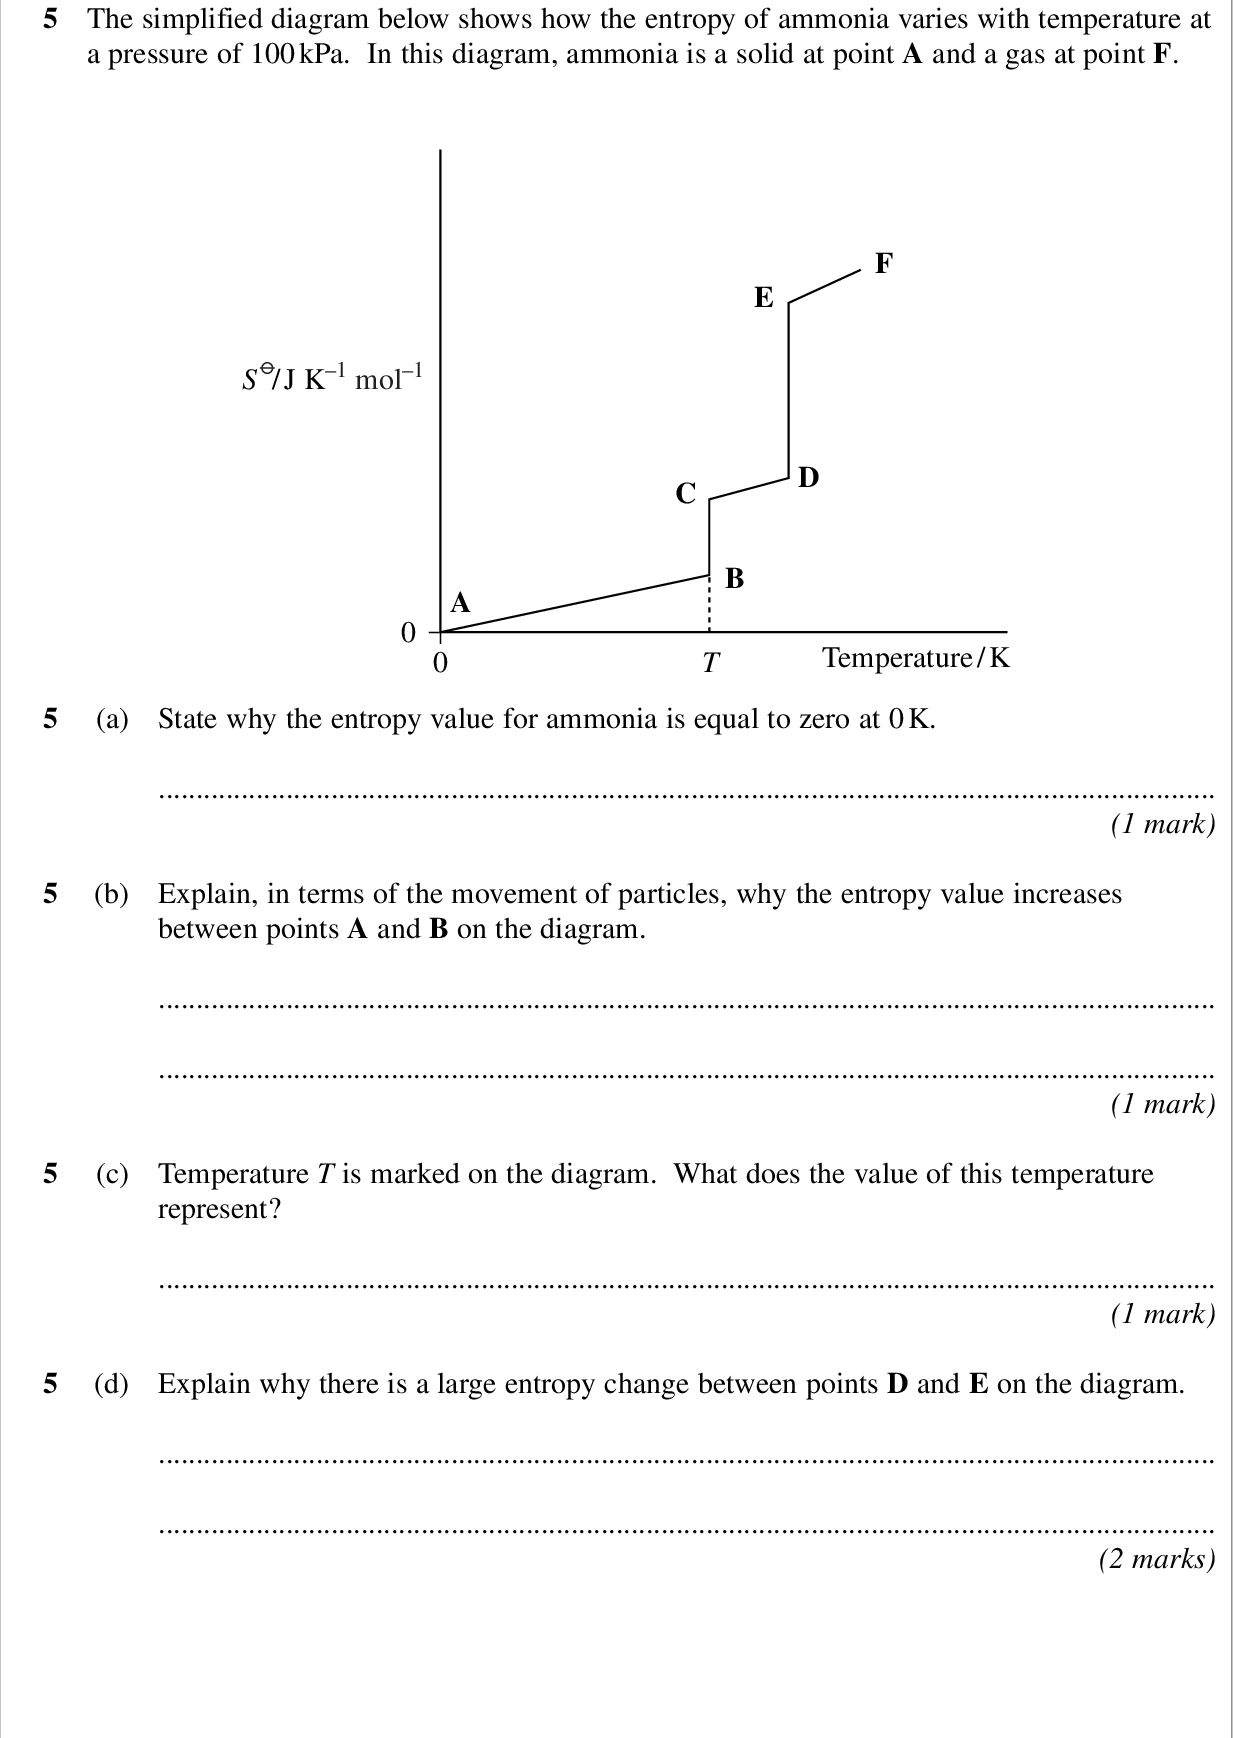 the simplified diagram below shows how the entropy of ammonia varies with temperature at a pressure of kpa in this diagram ammonia is a solid at point a and a gas at point f areas outside the box will not be scanned for marking s j k mol temperature k a state why the entropy value for ammonia is equal to zero at k mark b explain in terms of the movement of particles why the entropy value increases between points a and b on the diagram mark c temperature t is marked on the diagram what does the value of this temperature represent mark d explain why there is a large entropy change between points d and e on the diagram marks wmp jan chem e an equation for the reaction in the haber process is shown below together with some entropy data areas outside the box will not be scanned for marking n g h g nh g h kj mol s j k mol n g h g nh g e i calculate a value for the entropy change s for the formation of one mole of ammonia marks e ii give the equation that relates free energy change g to enthalpy change h and entropy change s use this equation to calculate the temperature at which the value of g for the formation of ammonia in the haber process if you have been unable to calculate an answer to part e i you may assume that s j k mol but this is not the correct value equation calculation marks extra space e iii what can you deduce about the formation of ammonia if the reaction mixture is heated to a temperature above the value that you have calculated in part e ii mark turn over wmp jan chem